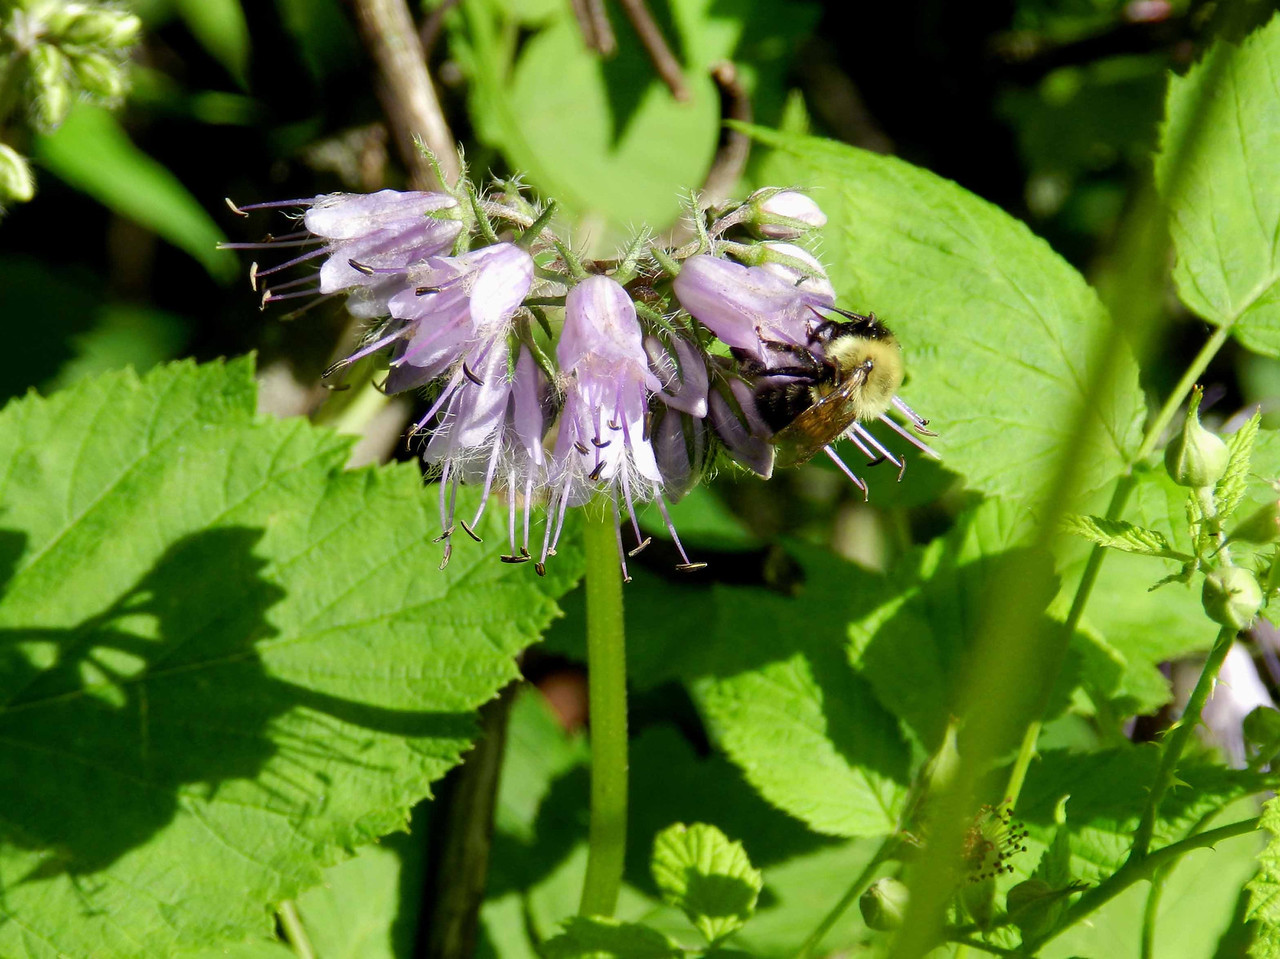 Virginia Waterleaf -- Hydrophyllum virginianum, a native perennial<br /> <br /> Their nectar attracts long-tongued bees and bumble bees. The pollinator here appears to be a kind of Cuckoo bee as it has no pollen baskets. Cuckoo bees lay their eggs in the nests of other bumble bees.